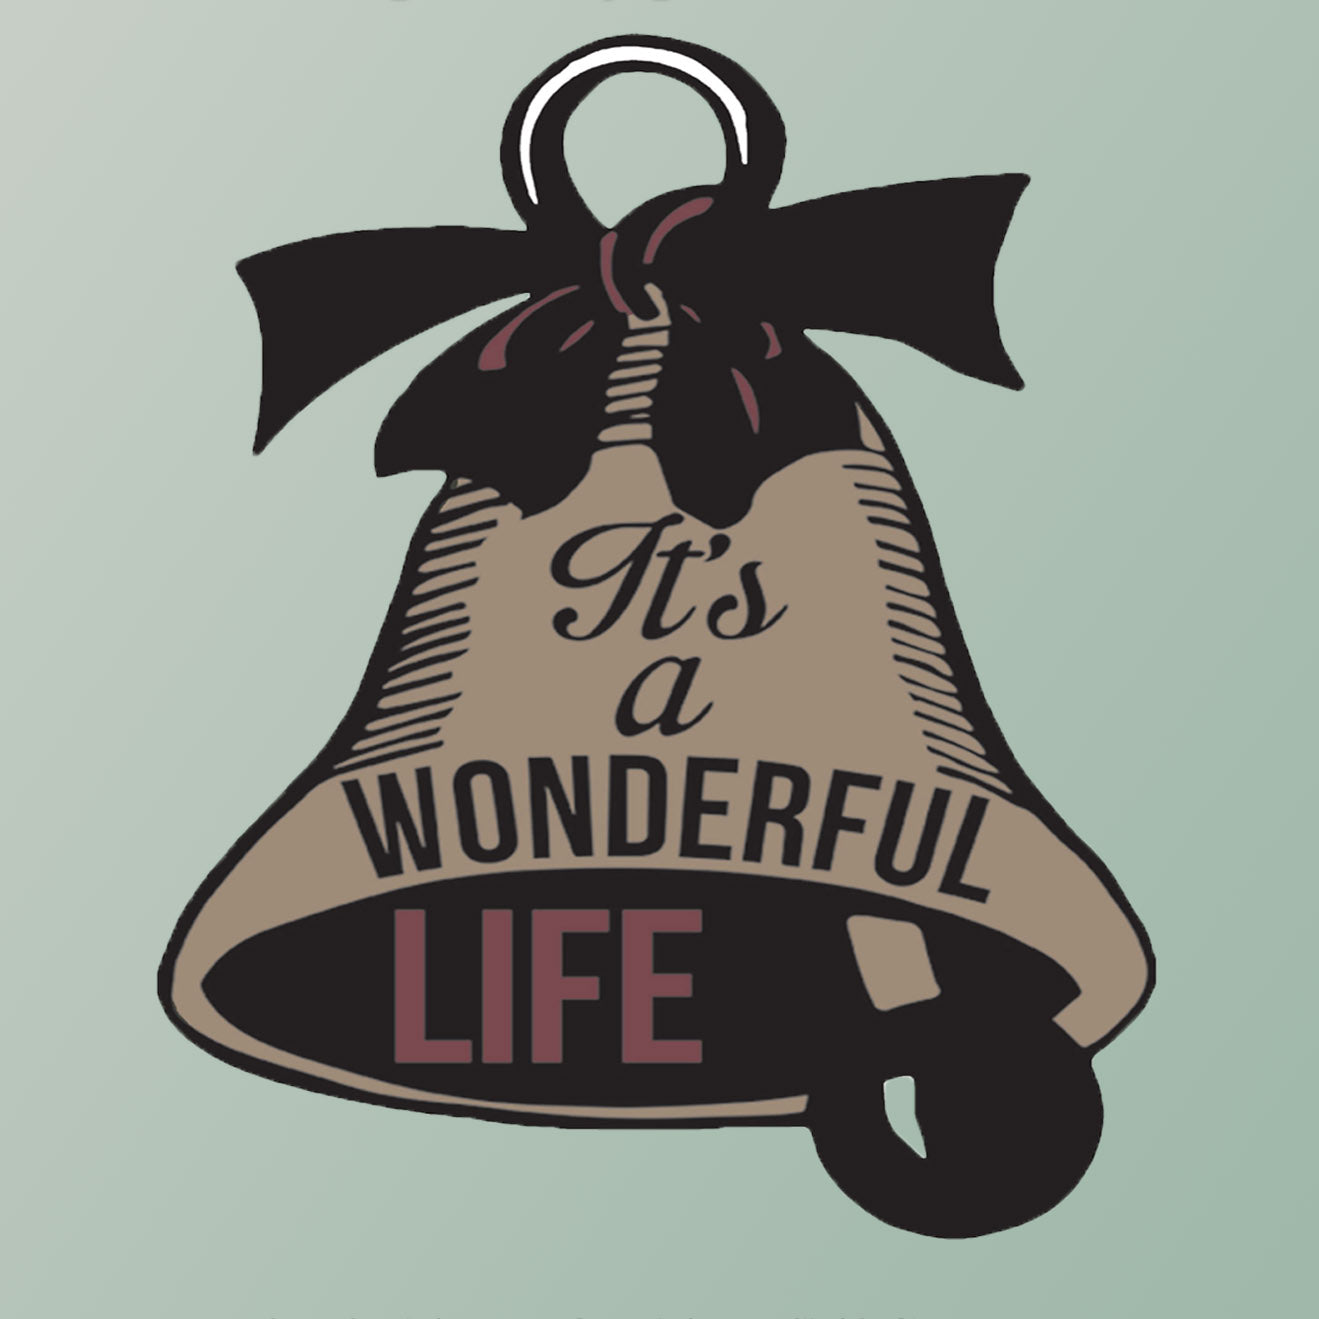 It's a Wonderful Life performed by The Malvern Theater Society - Active Image Media